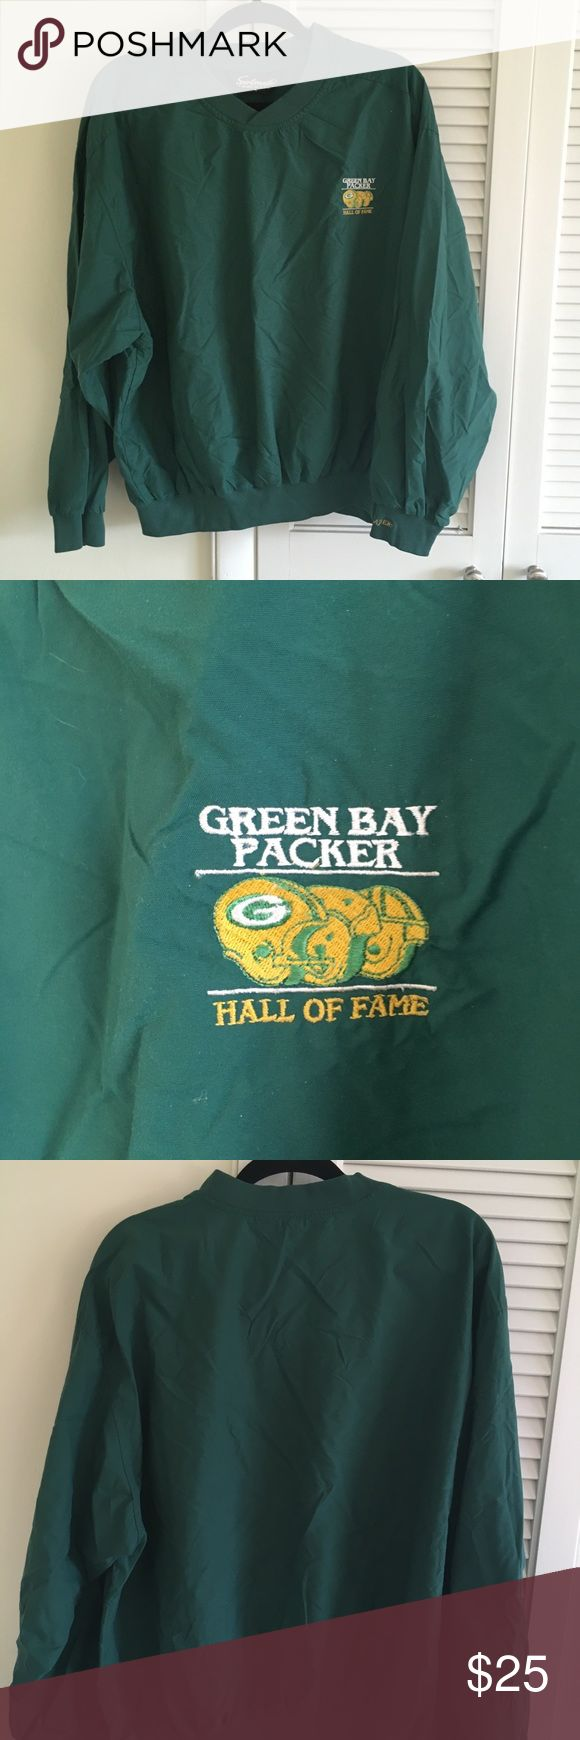 Green Bay packers hall of fame Windbreaker Vintage vtg green Bay packers hall of fame Windbreaker in excellent condition  No stains no damages no holes  Fits perfect to size  Majestic  Has hall of fame patch on the left chest.  Willing to negotiate offer 90s Jackets & Coats Windbreakers